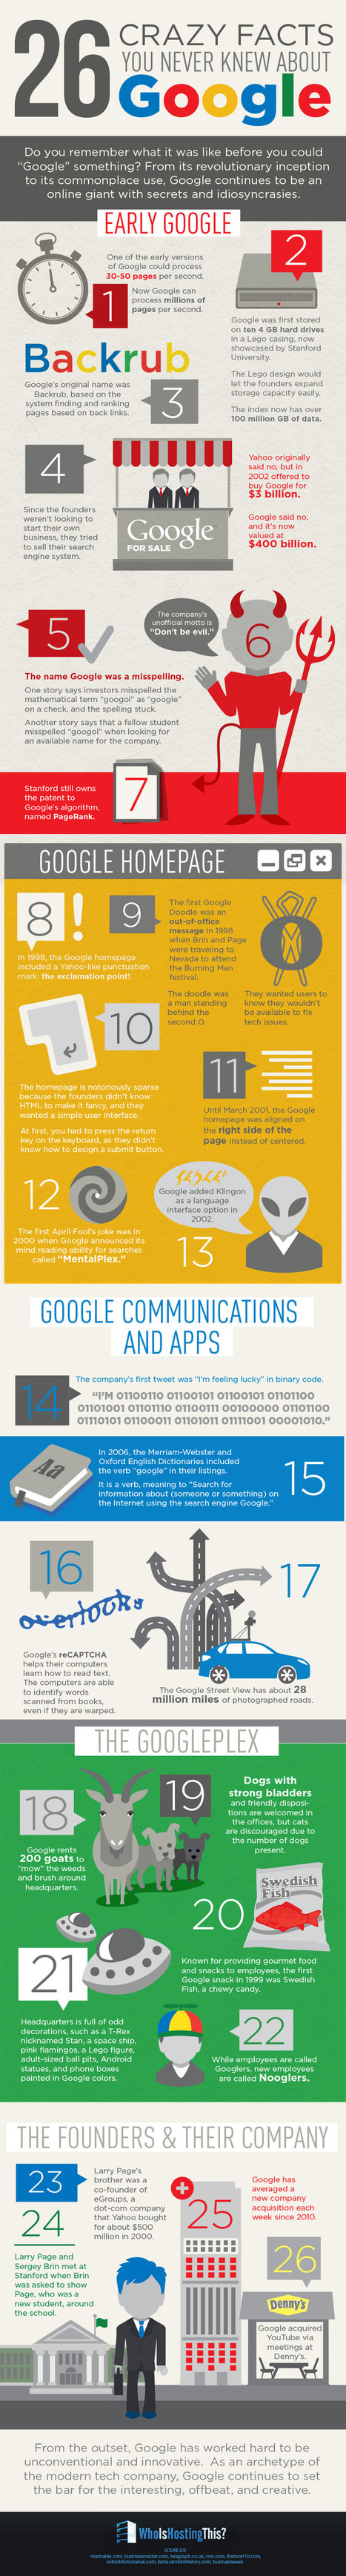 26 Interesting & Surprising Facts about Google #Infographic | Learning With Social Media Tools & Mobile | Scoop.it